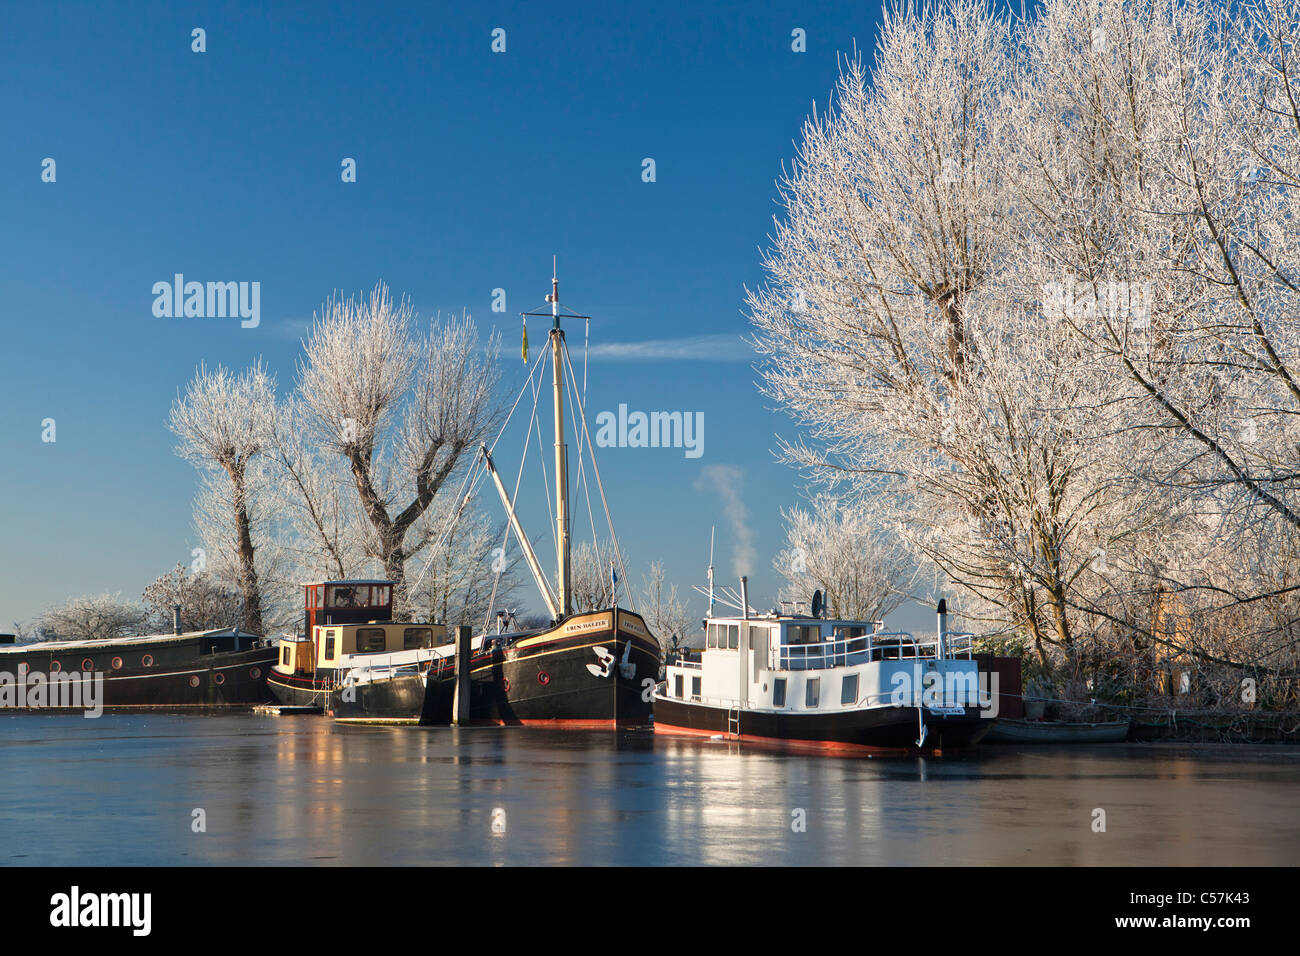 The Netherlands, Nigtevecht, Boats in river called Vecht. Winter, frost. - Stock Image